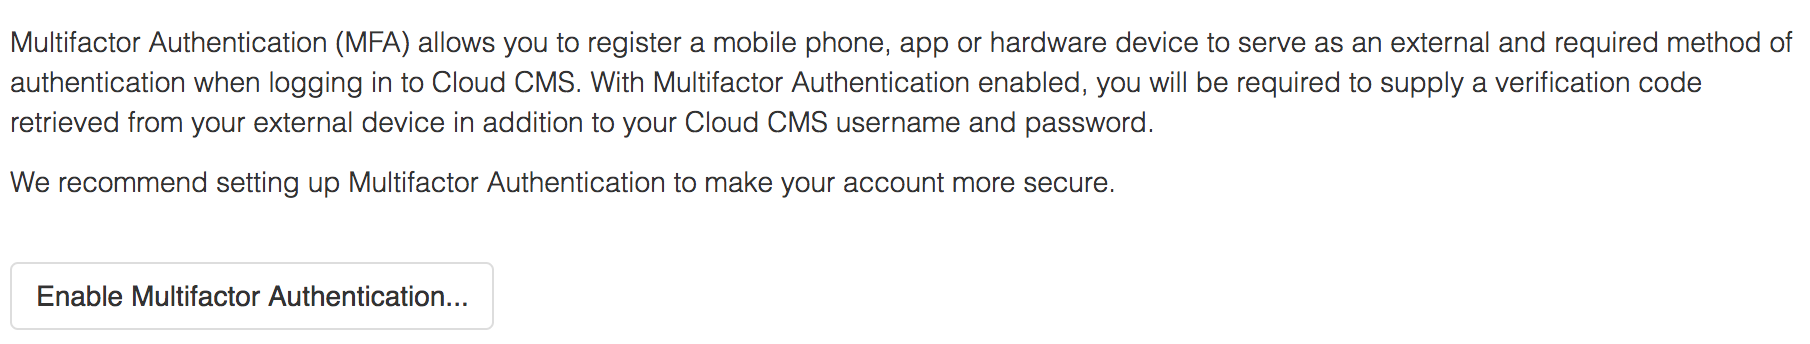 Documentation - Multifactor Authentication - Cloud CMS